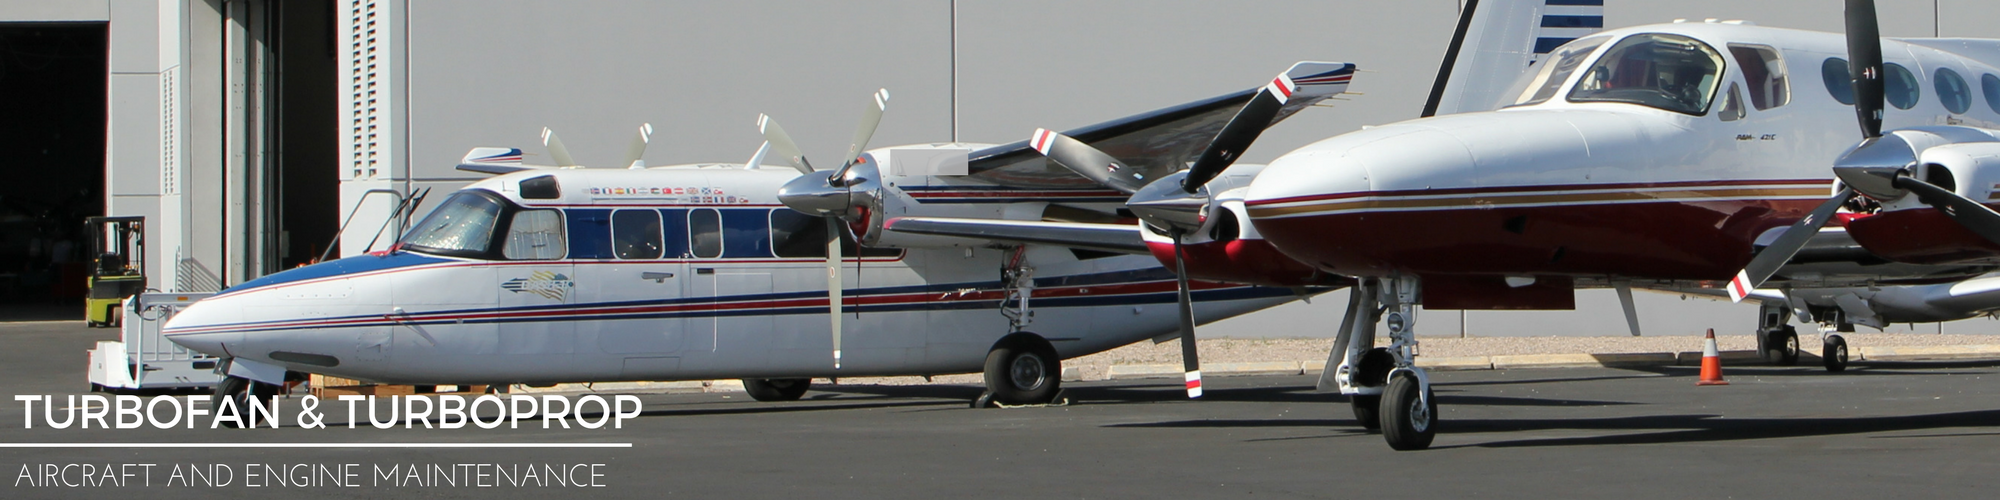 Turbofan and Turboprop (4)